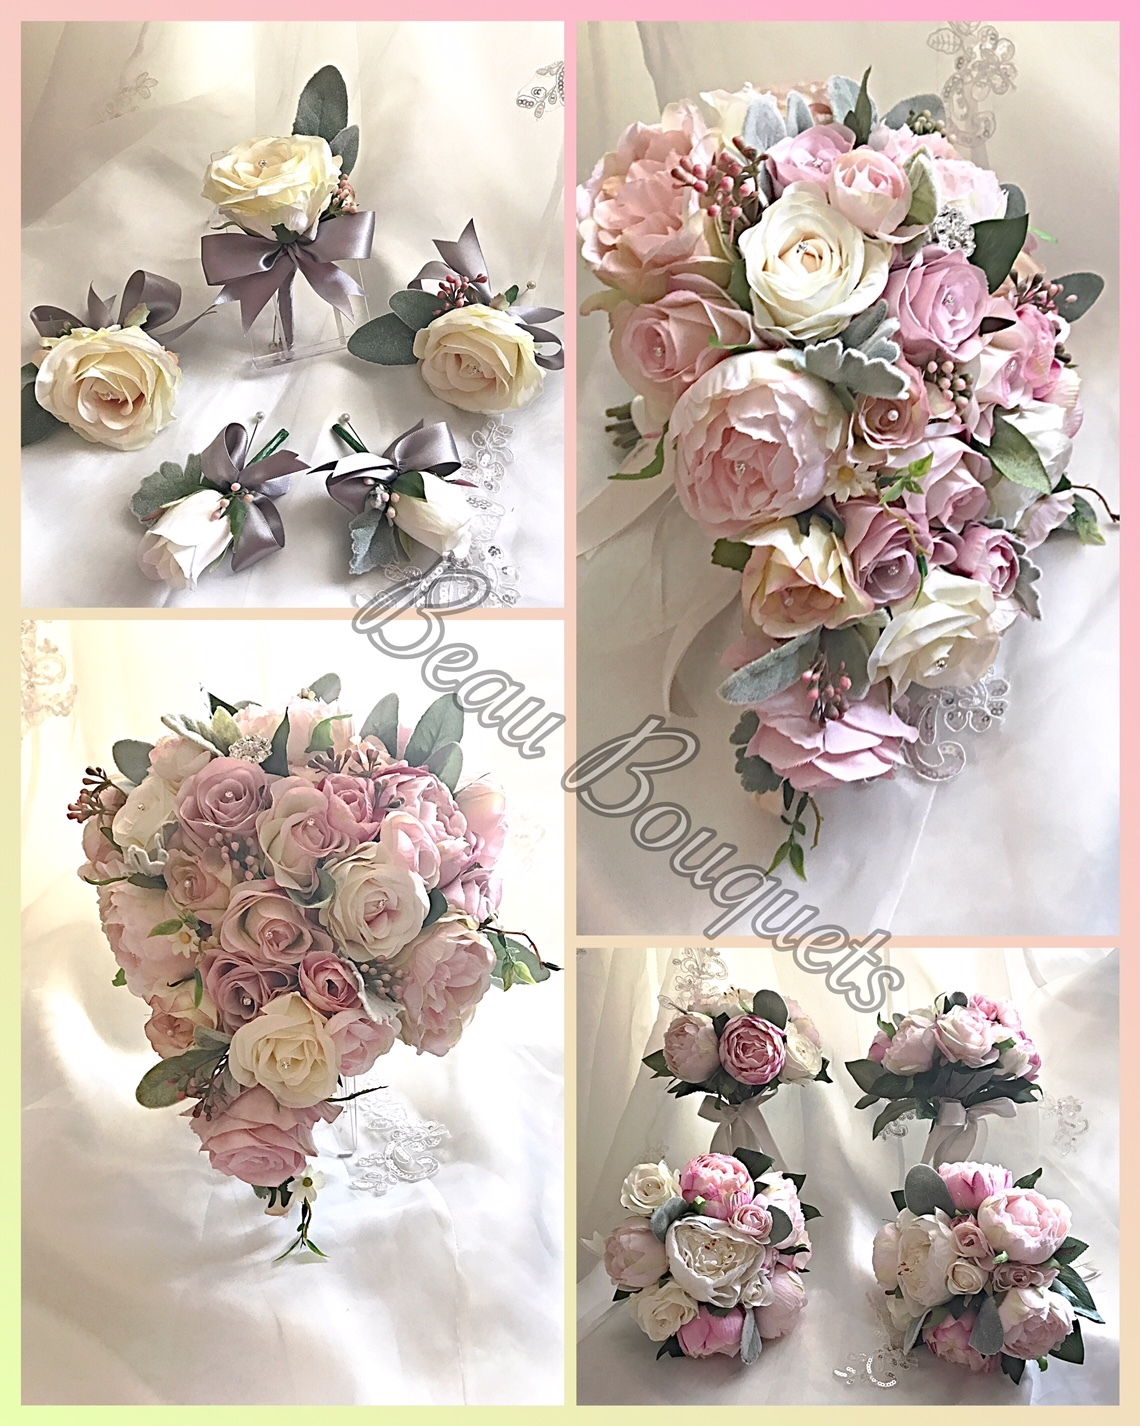 PRECIOUS - Teardrop rose bride bouquet package Vintage pinks & ivory roses with waxflower, berries & dusky foliage. Diamantes to roses & brooch detail